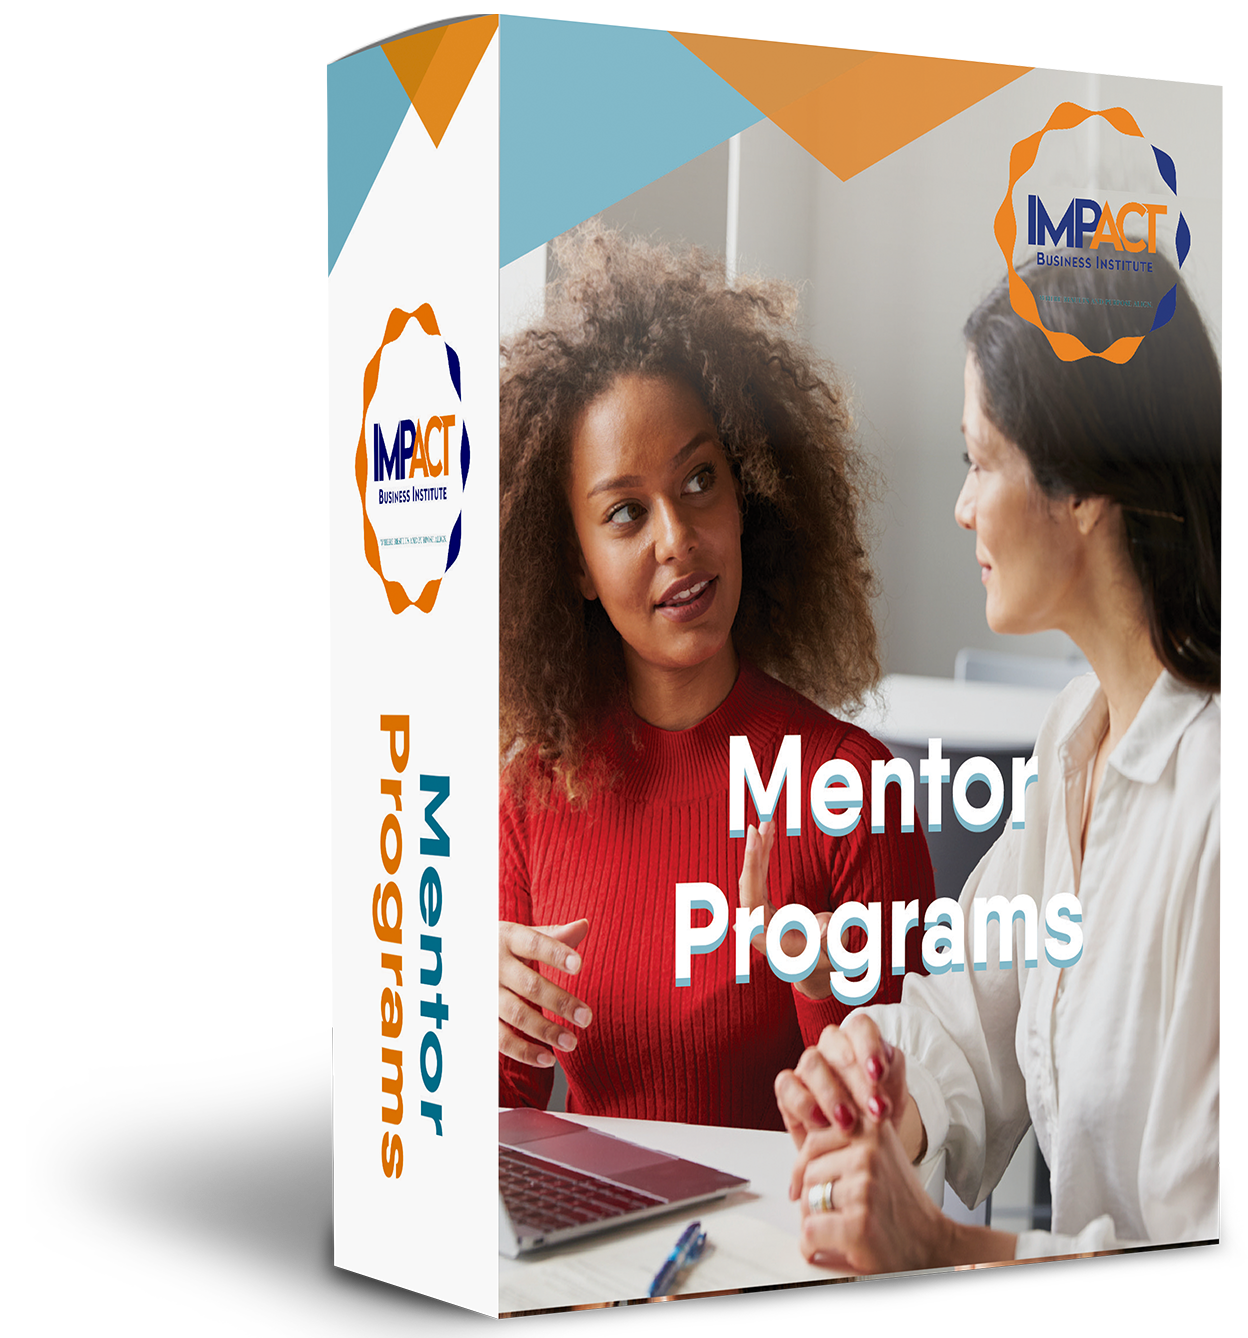 318532_IBI Products_ Mentor Programs_v1_111218.png